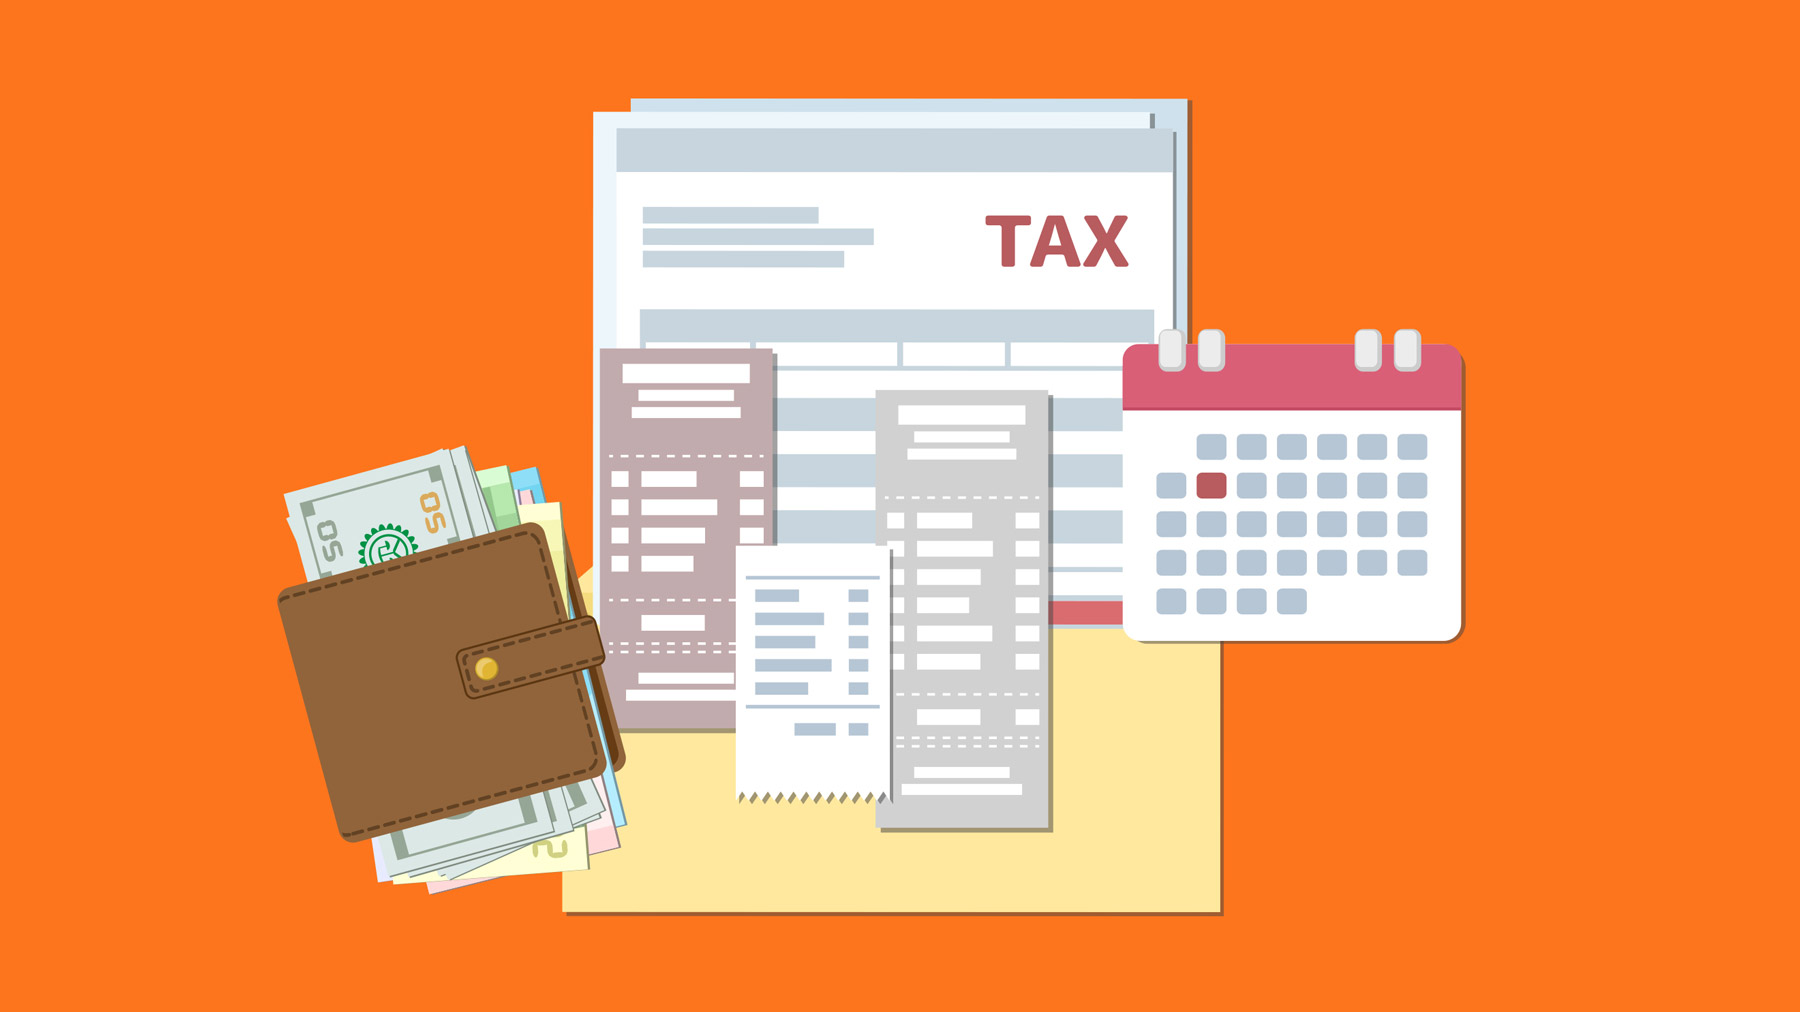 When is tax season 2020 - tax season 2020 start date, tax day date, and more